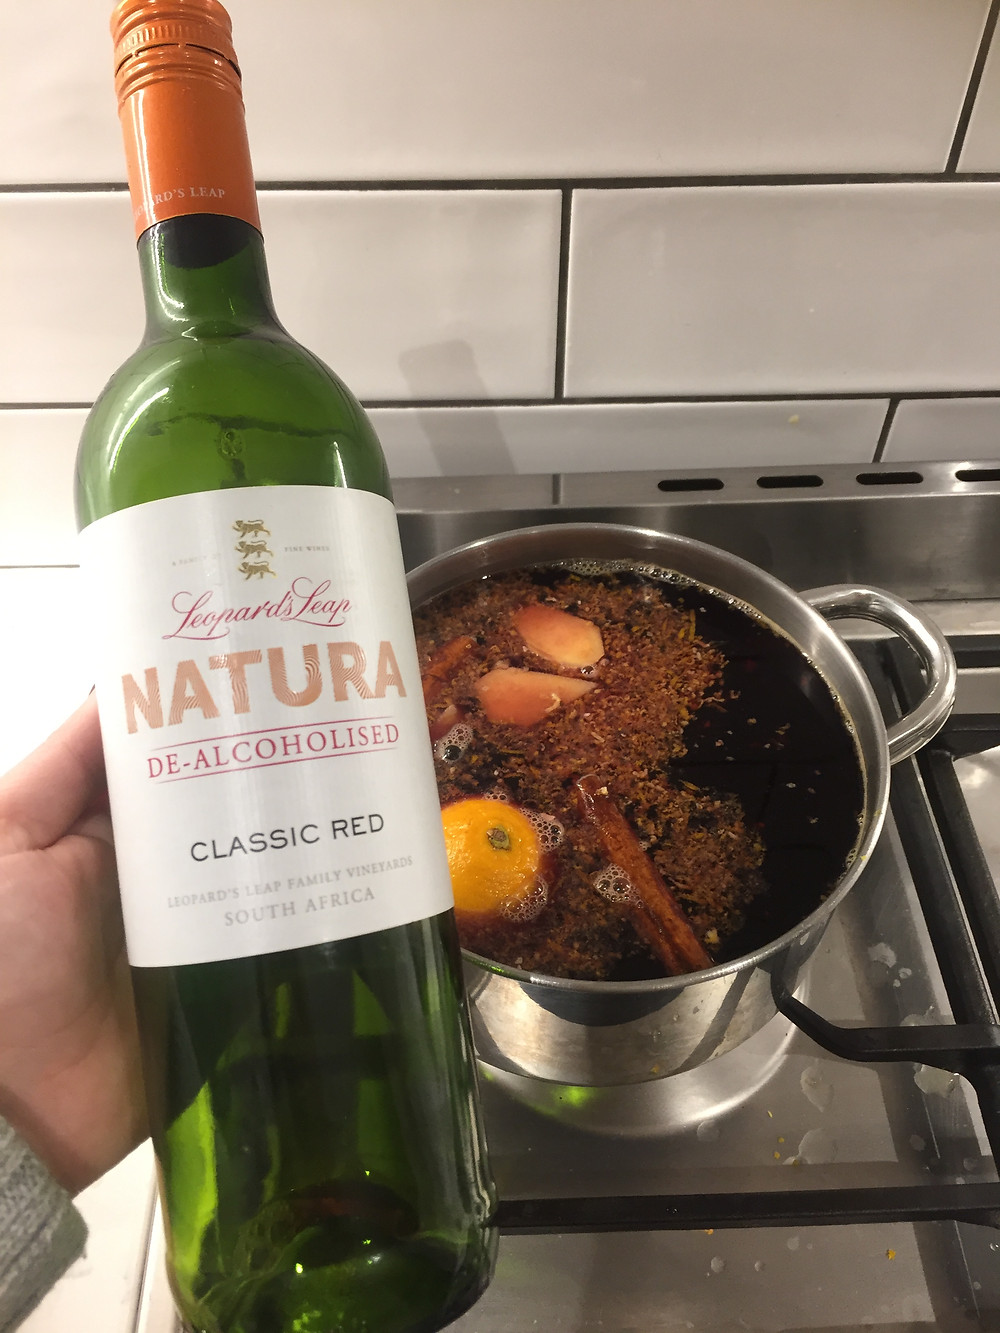 Cooking spiced wine Leopard's ;eap Natura Classic Red. De-alcoholised wine. South African wine. How to cook with wine